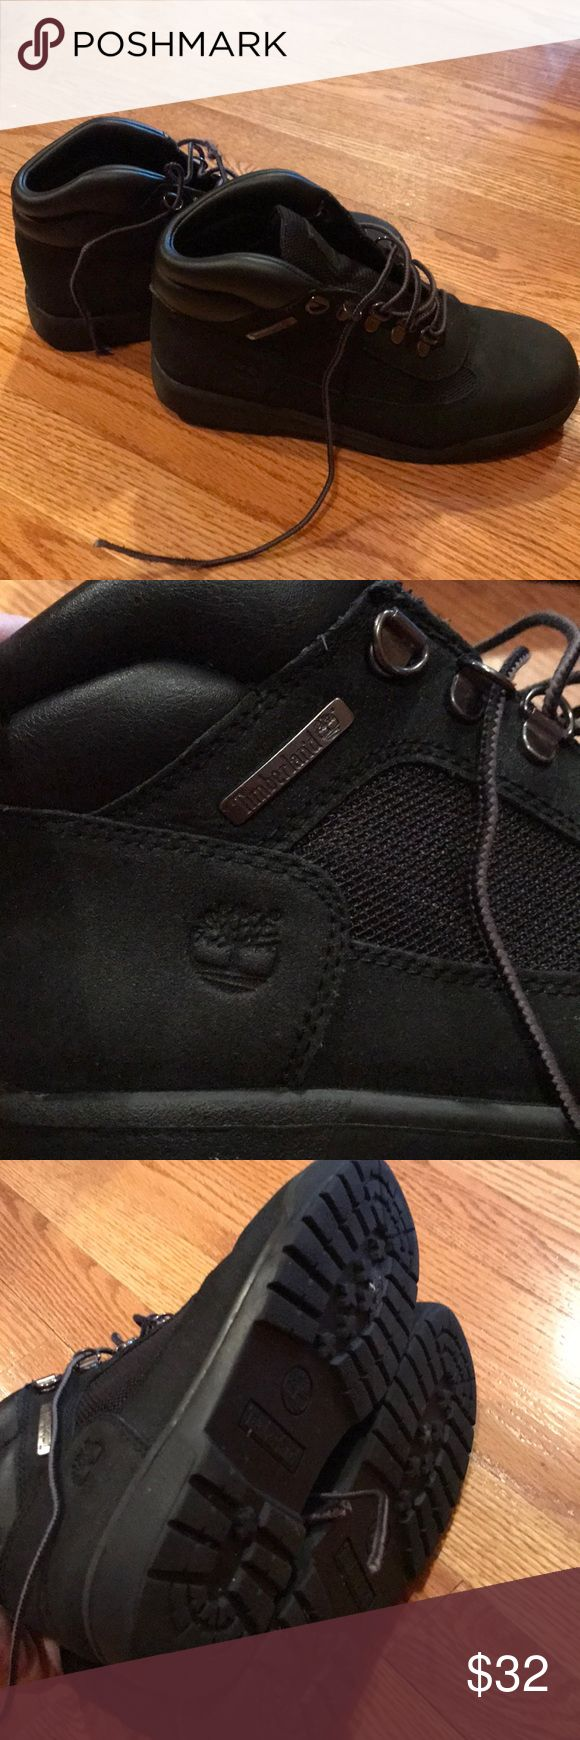 Timberland boys boots Very warm and durable boys timberland boots. Perfect condition except for the one of the shoelaces being frayed (see pic). Timberland Shoes Boots